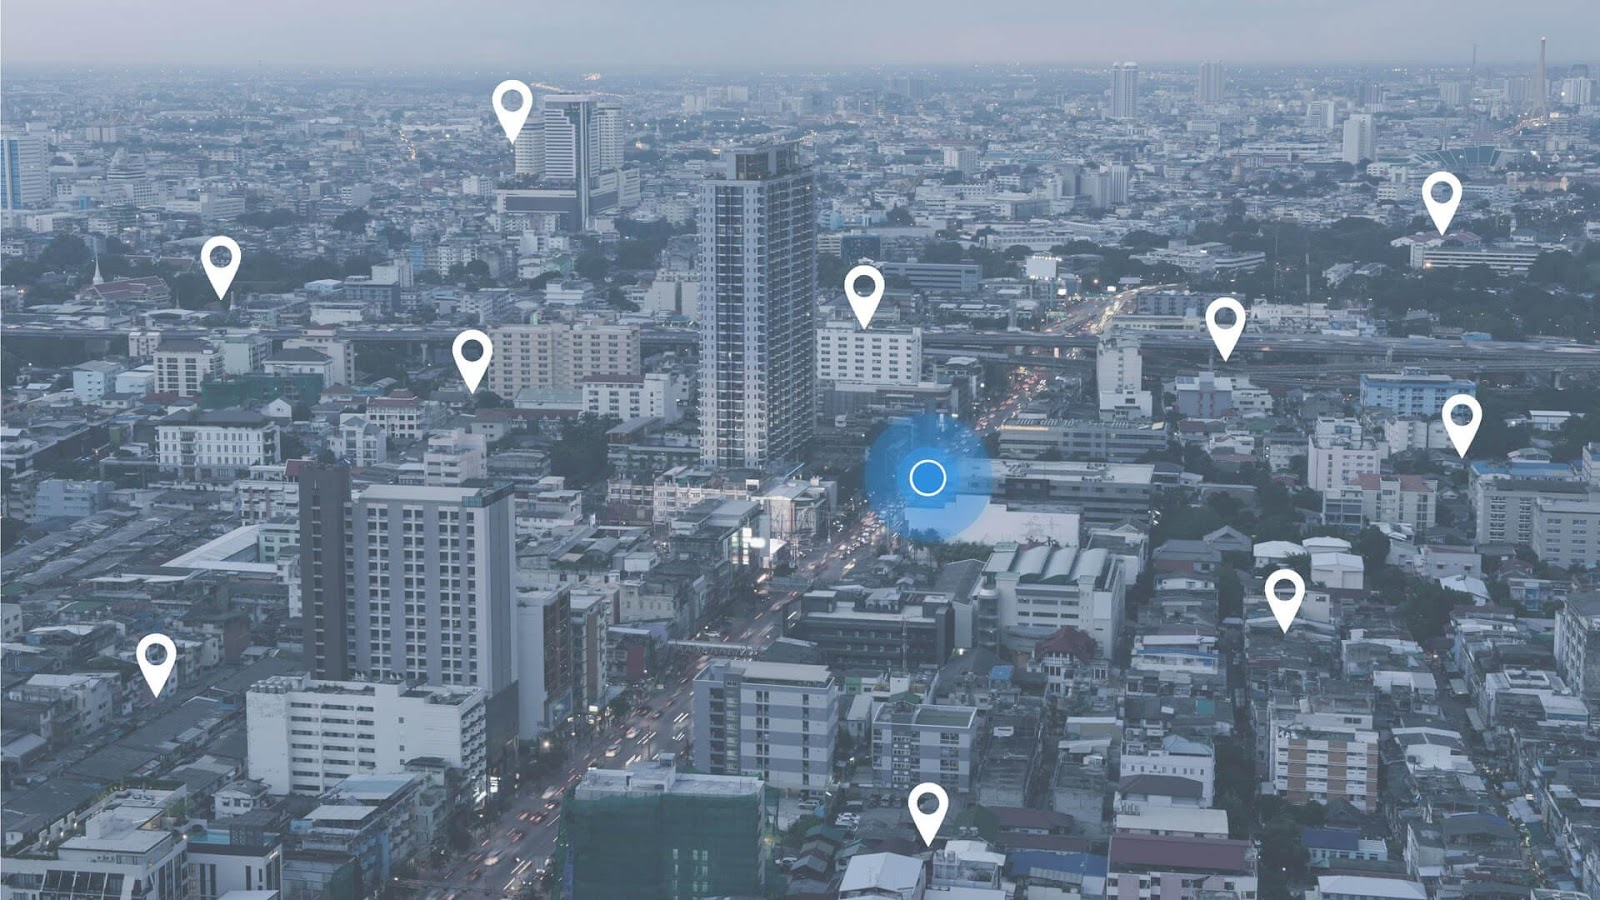 Before looking at this significant hurdle you'll have to face when expanding, let's first of all look at the pros and cons of growing your business into multiple locations.